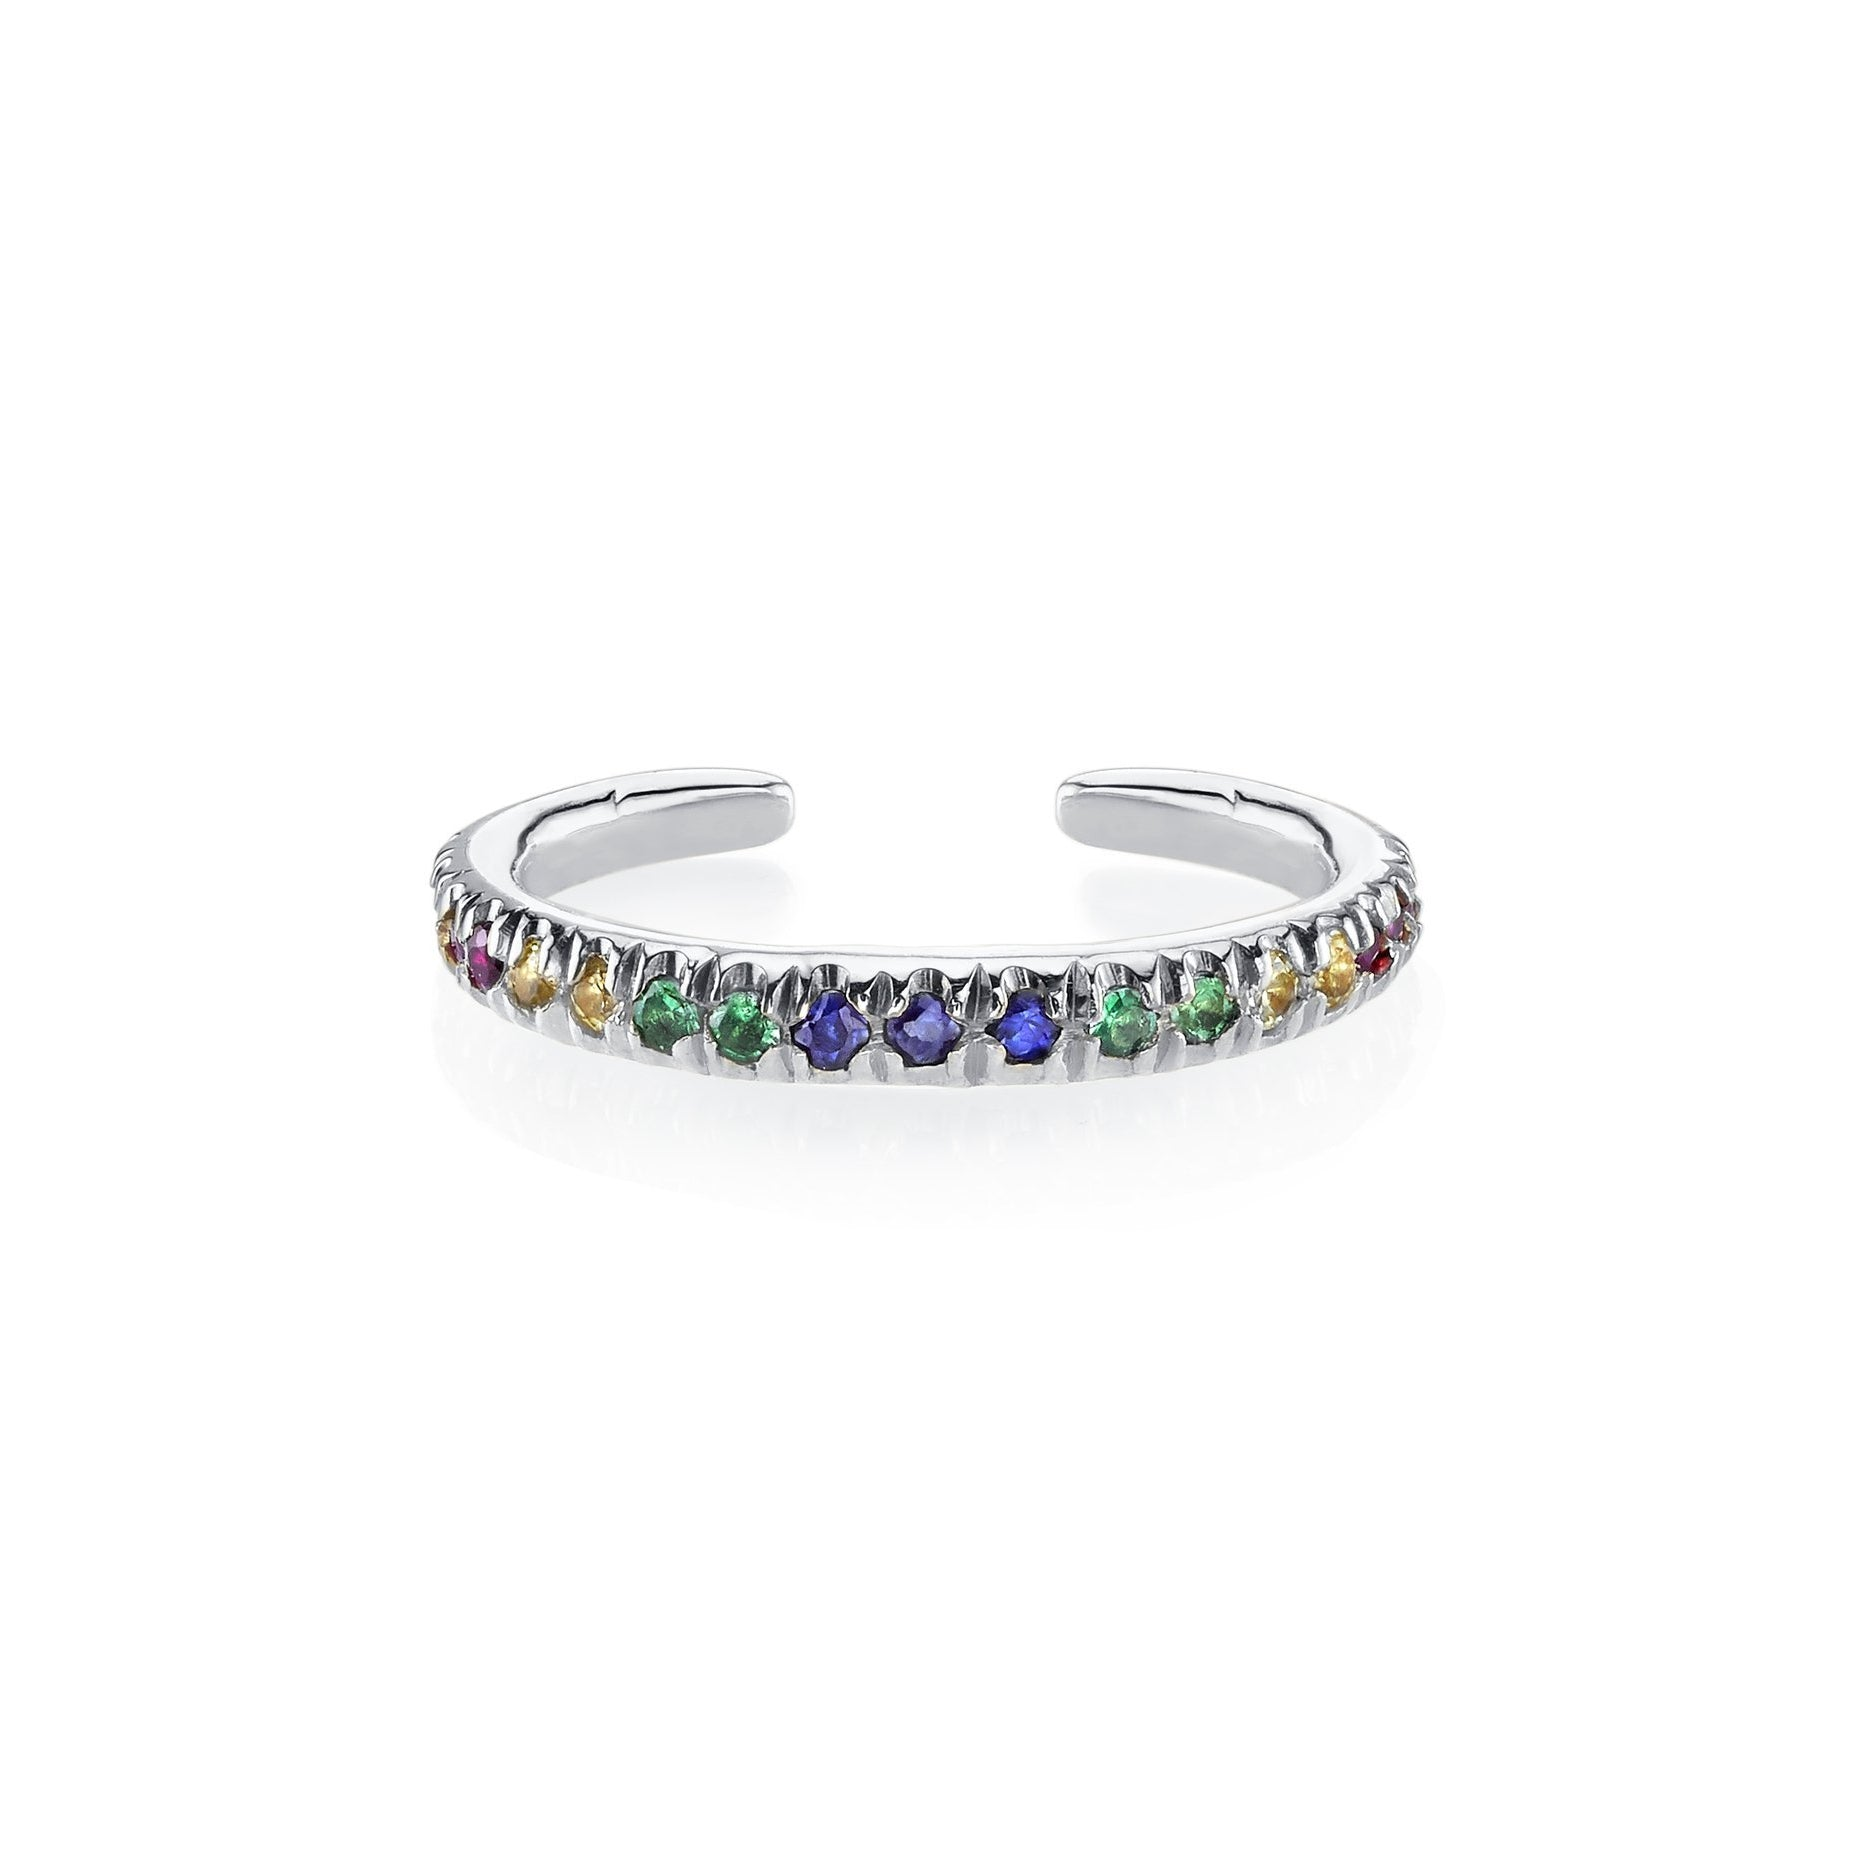 Gabriela Artigas Reloaded Ear Cuff with Rainbow Pave Stones (Single)